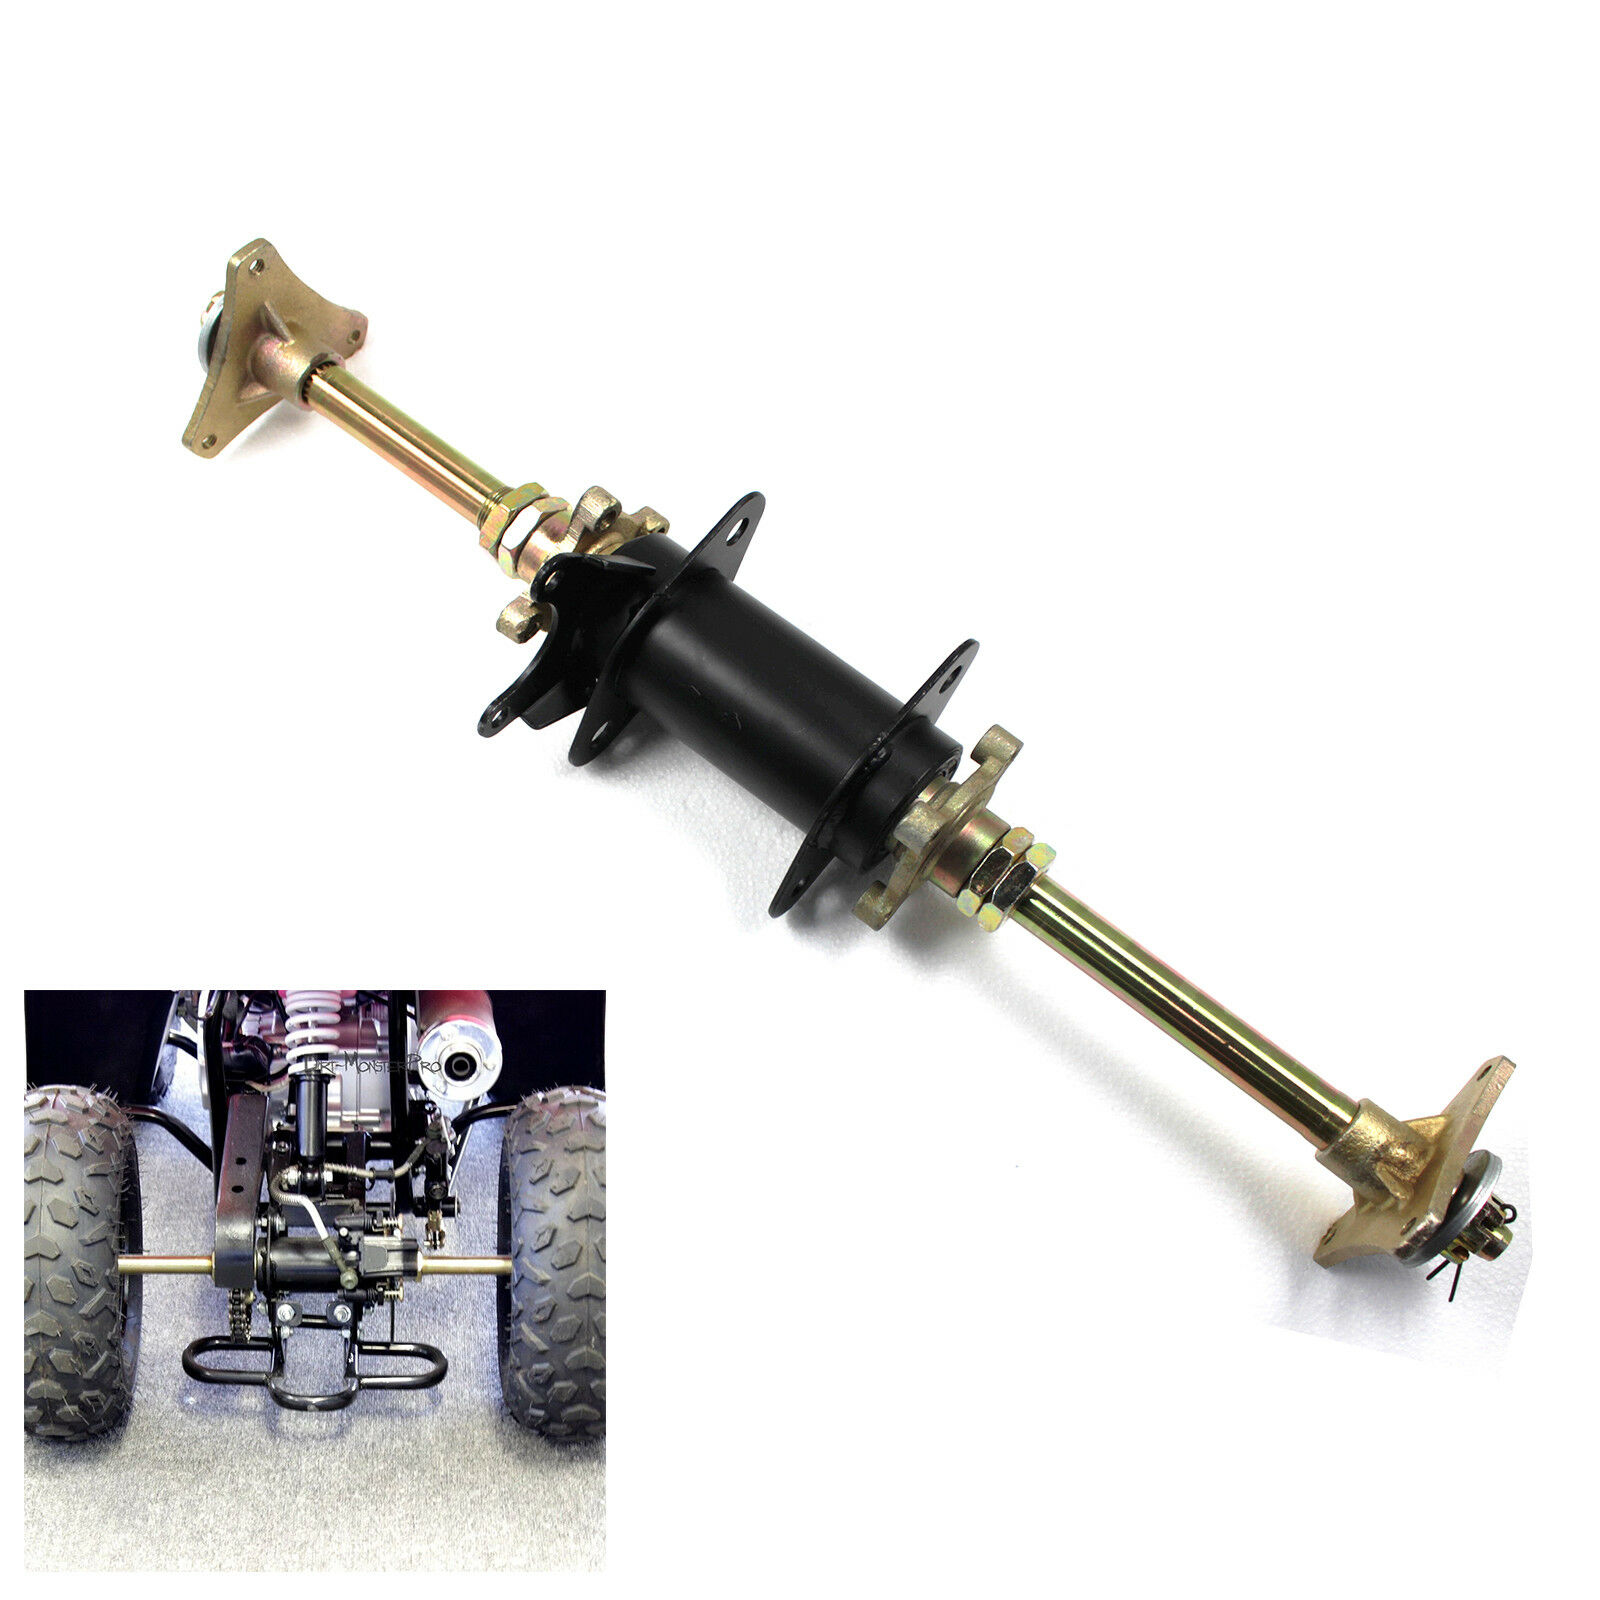 Professional Atv Trailer Half Torsion Rear Axle View Rear Axle Hishen Product Details From Ningbo Yinzhou Hishen Hardware Co Ltd On Alibaba Com